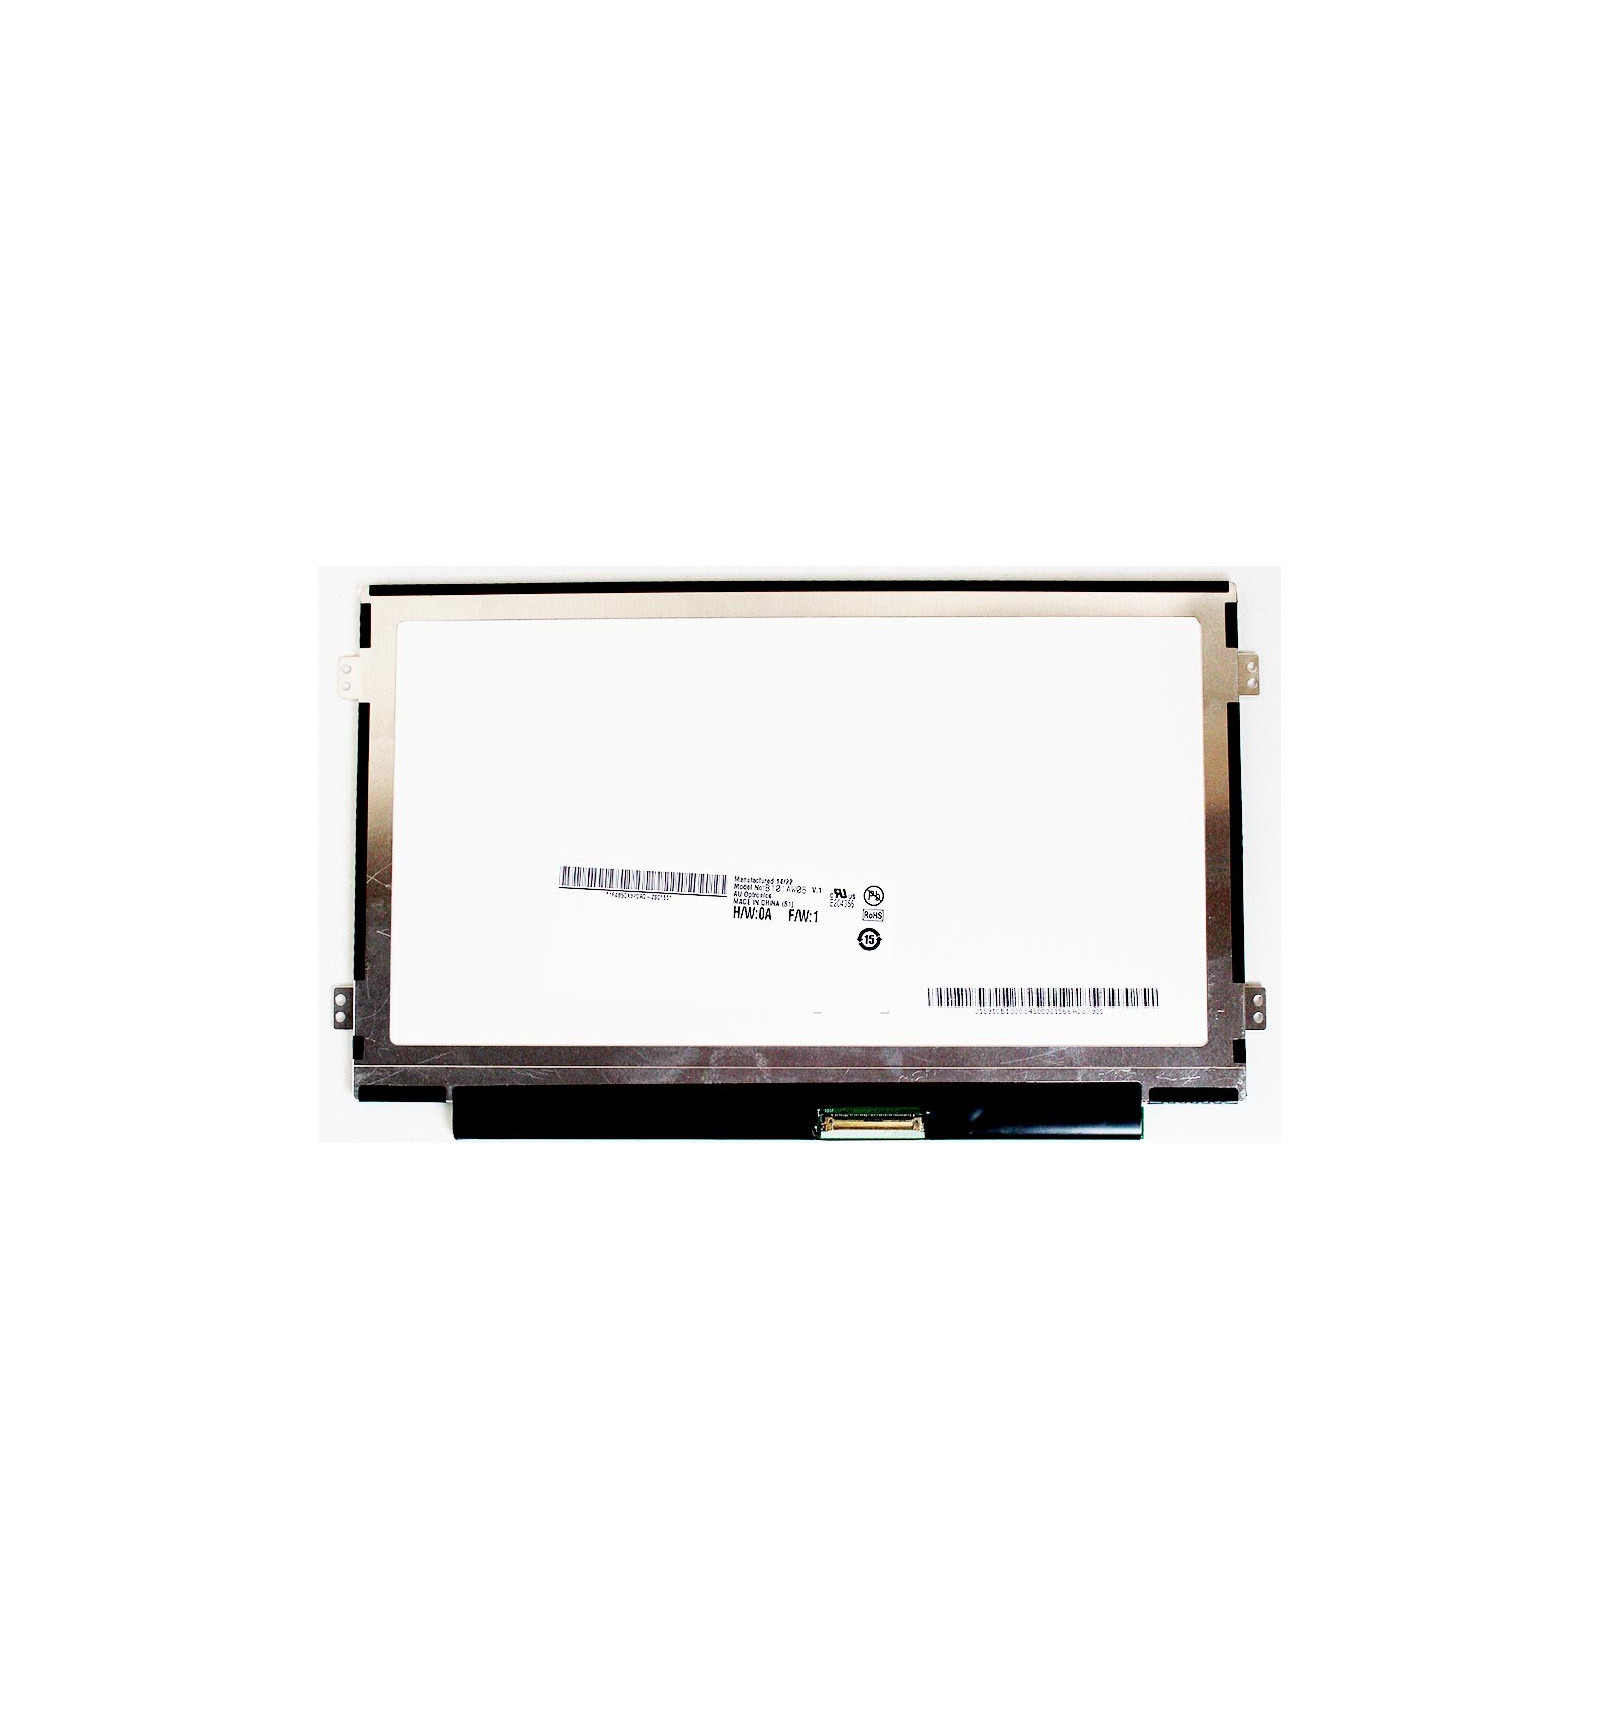 Display laptop model Acer Aspire One D260-2506